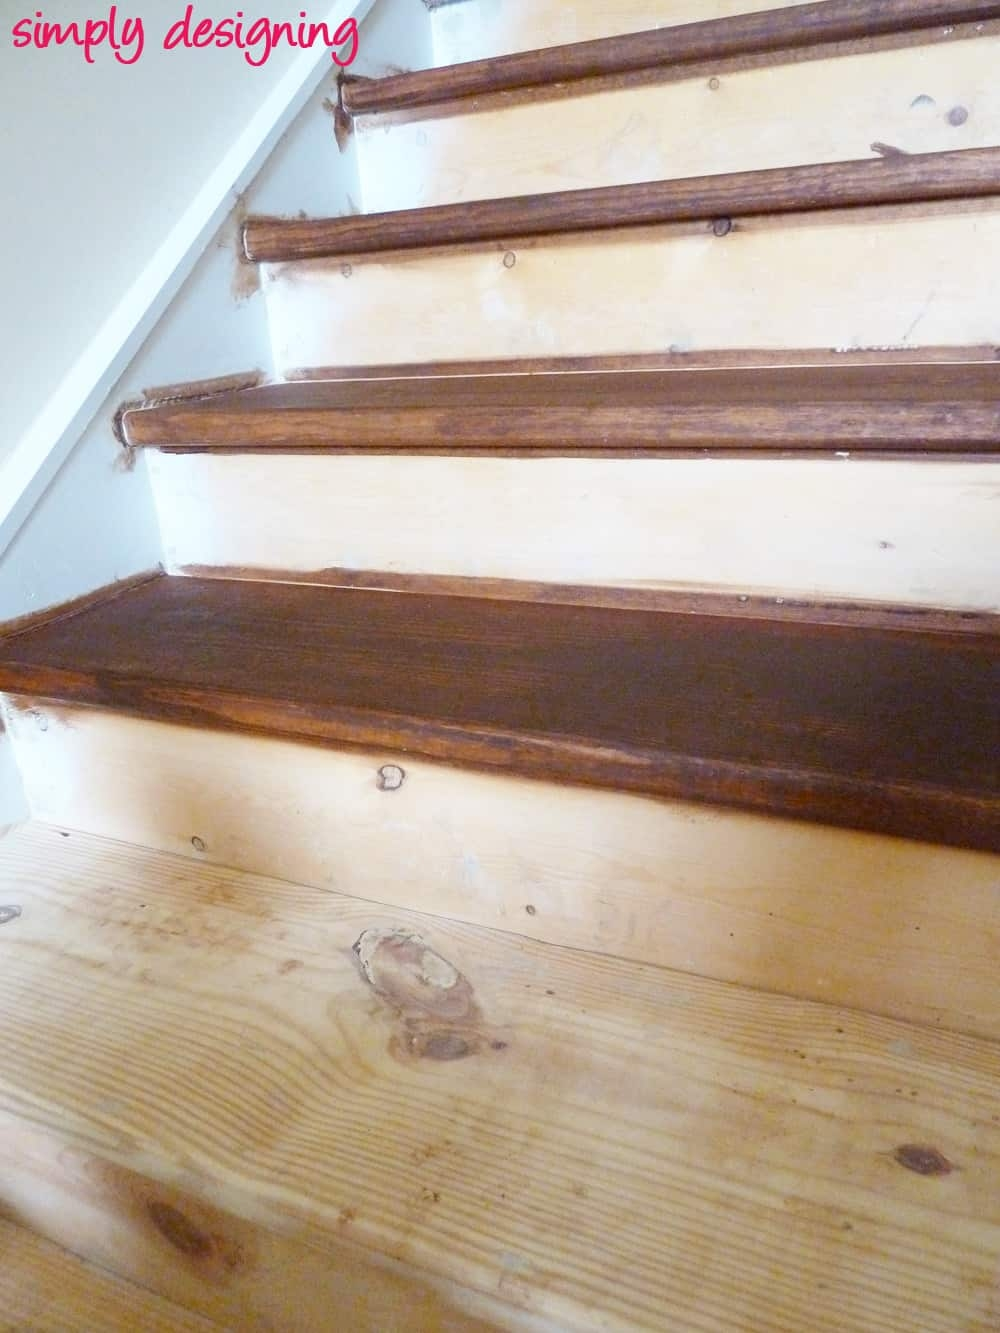 Staircase Make Over Part 2 Mistakes To Avoid And How To Do It Right   Yellow Pine Stair Treads   Natural   Diy   White Pine   Distressed   Hemlock